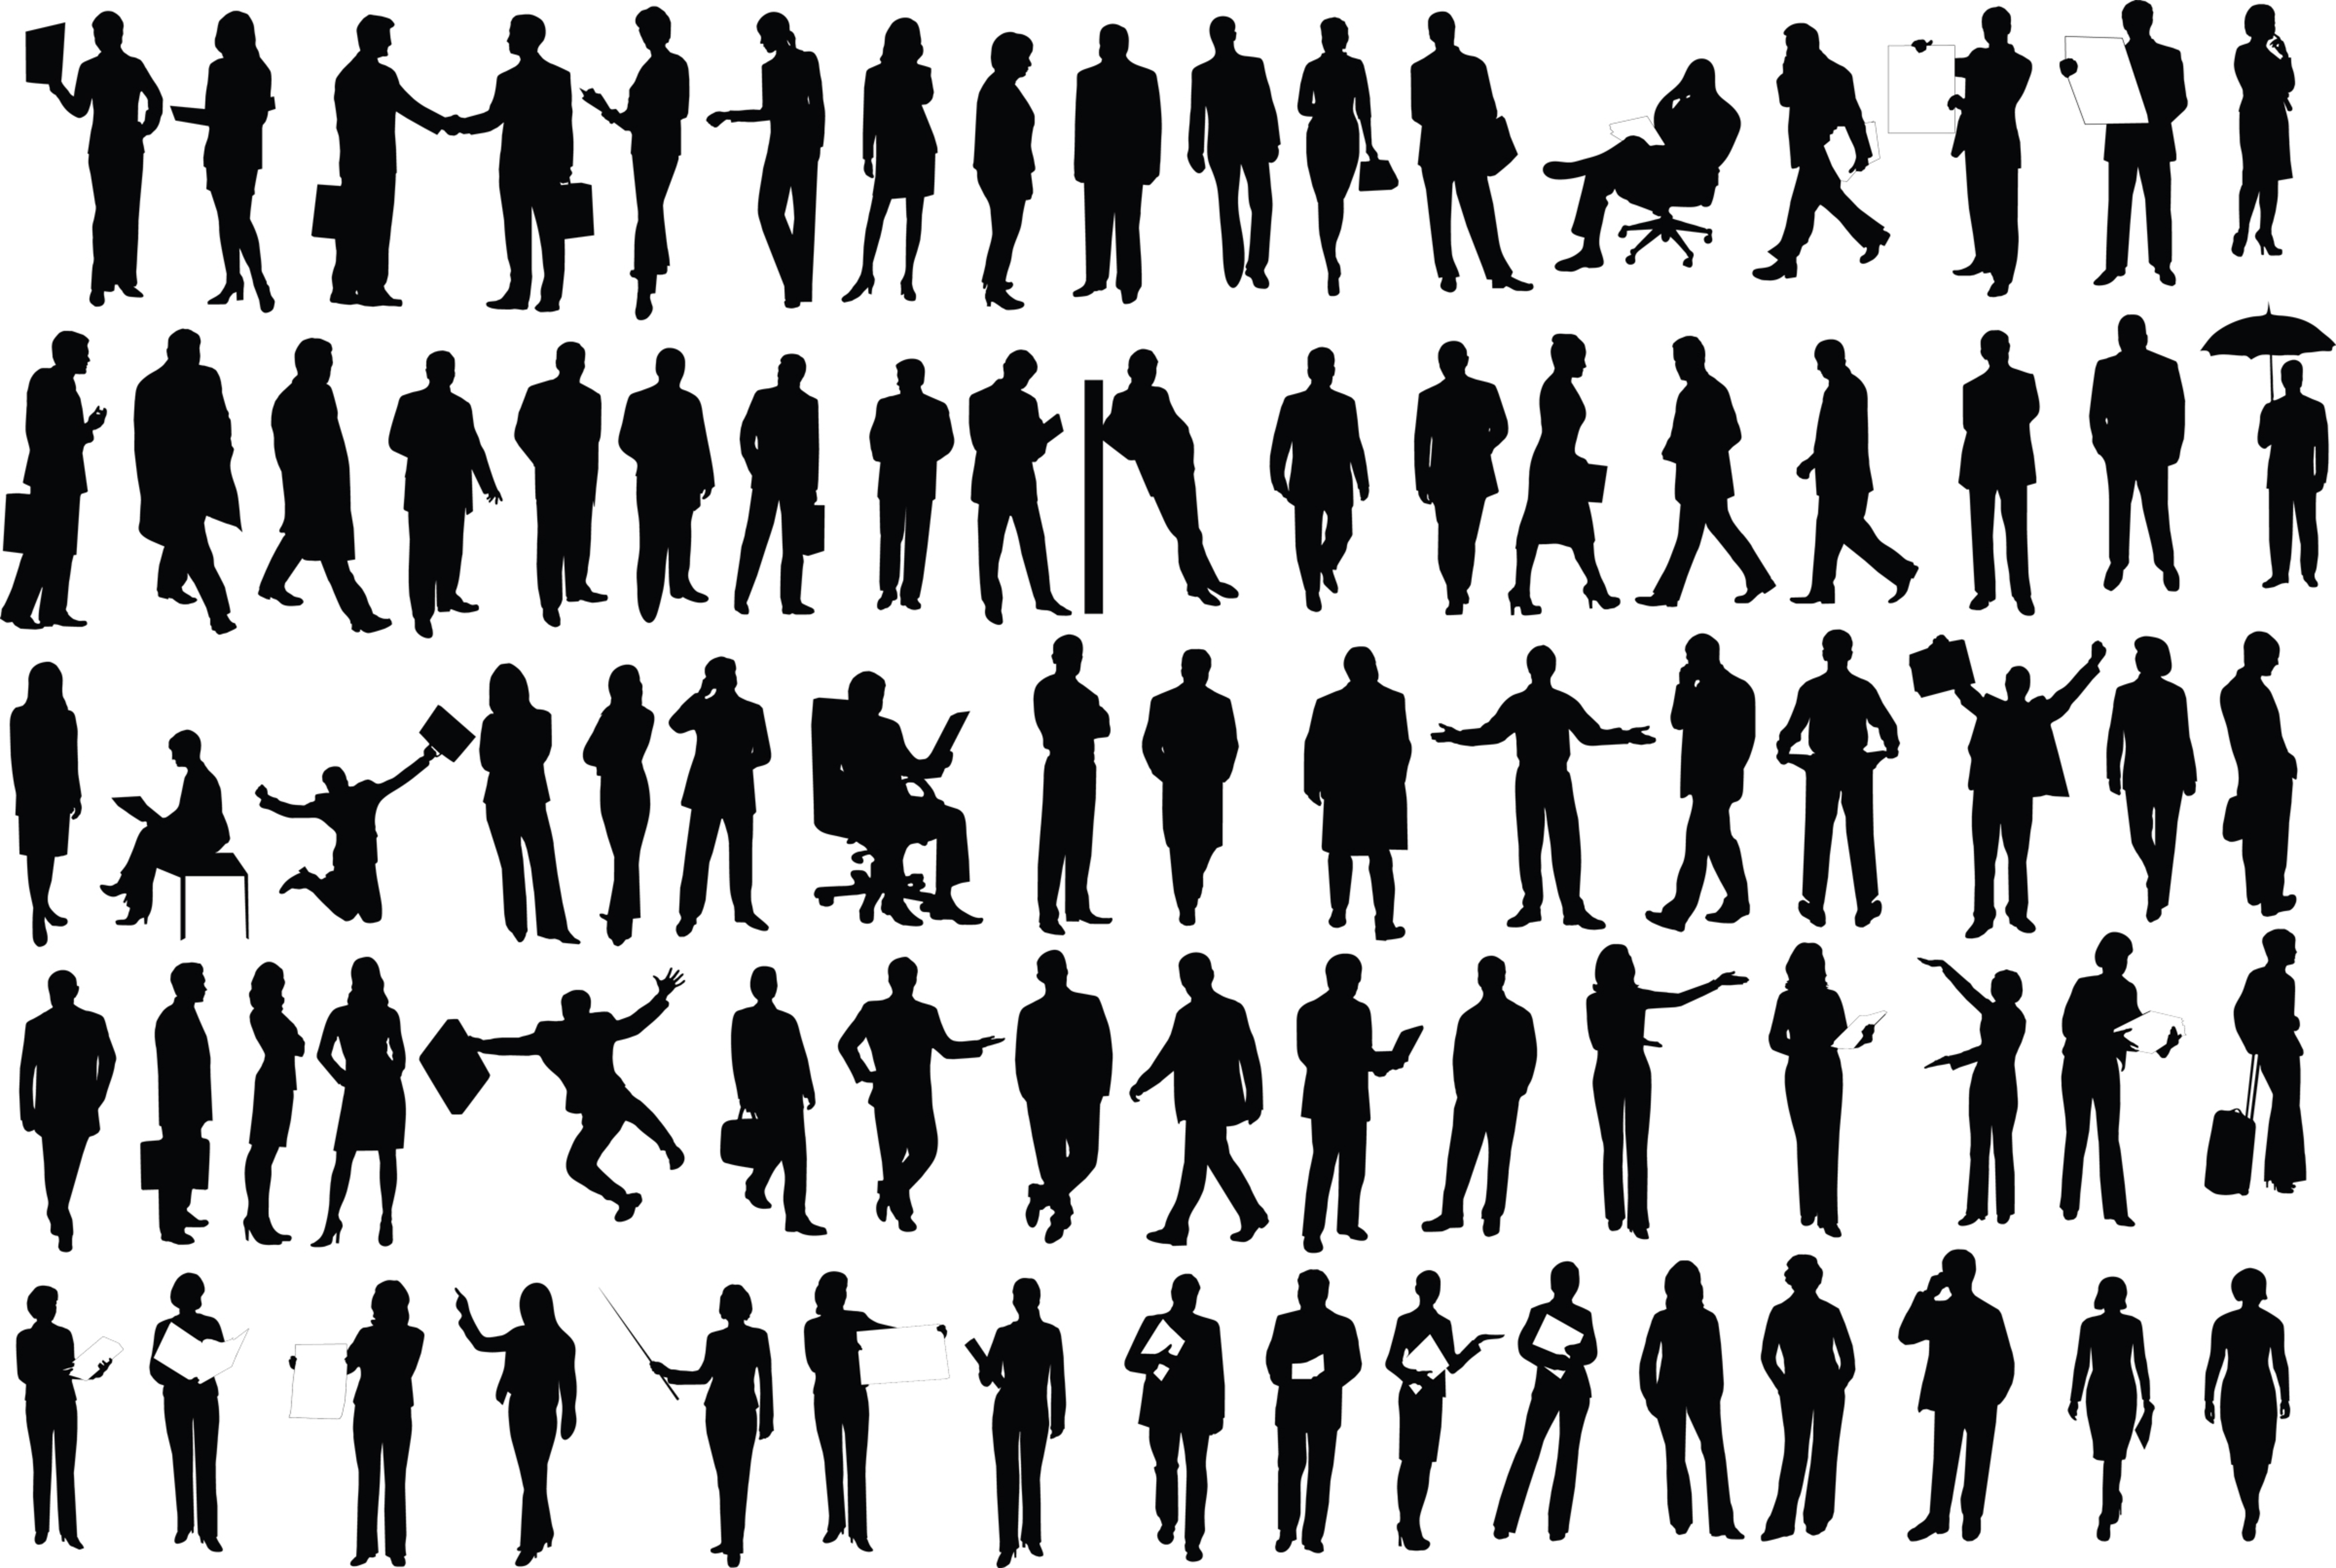 Crowd clipart shadow. Business group of people